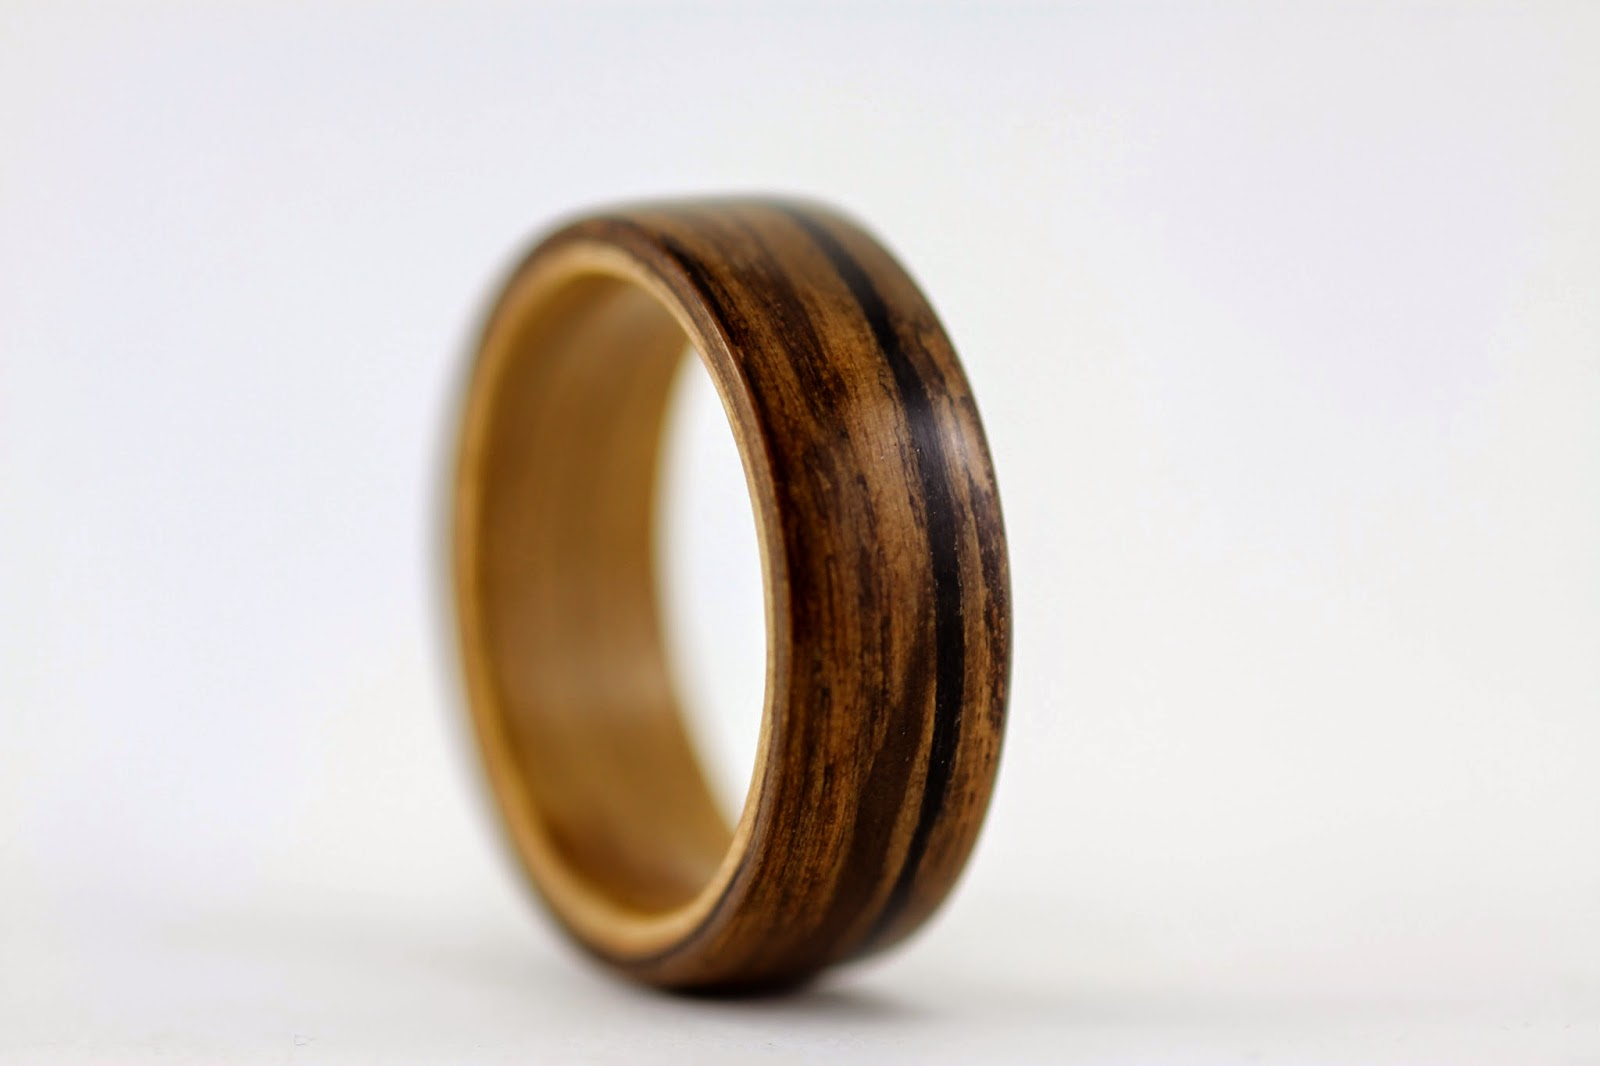 wood rings by simply wood rings a post about bogwood